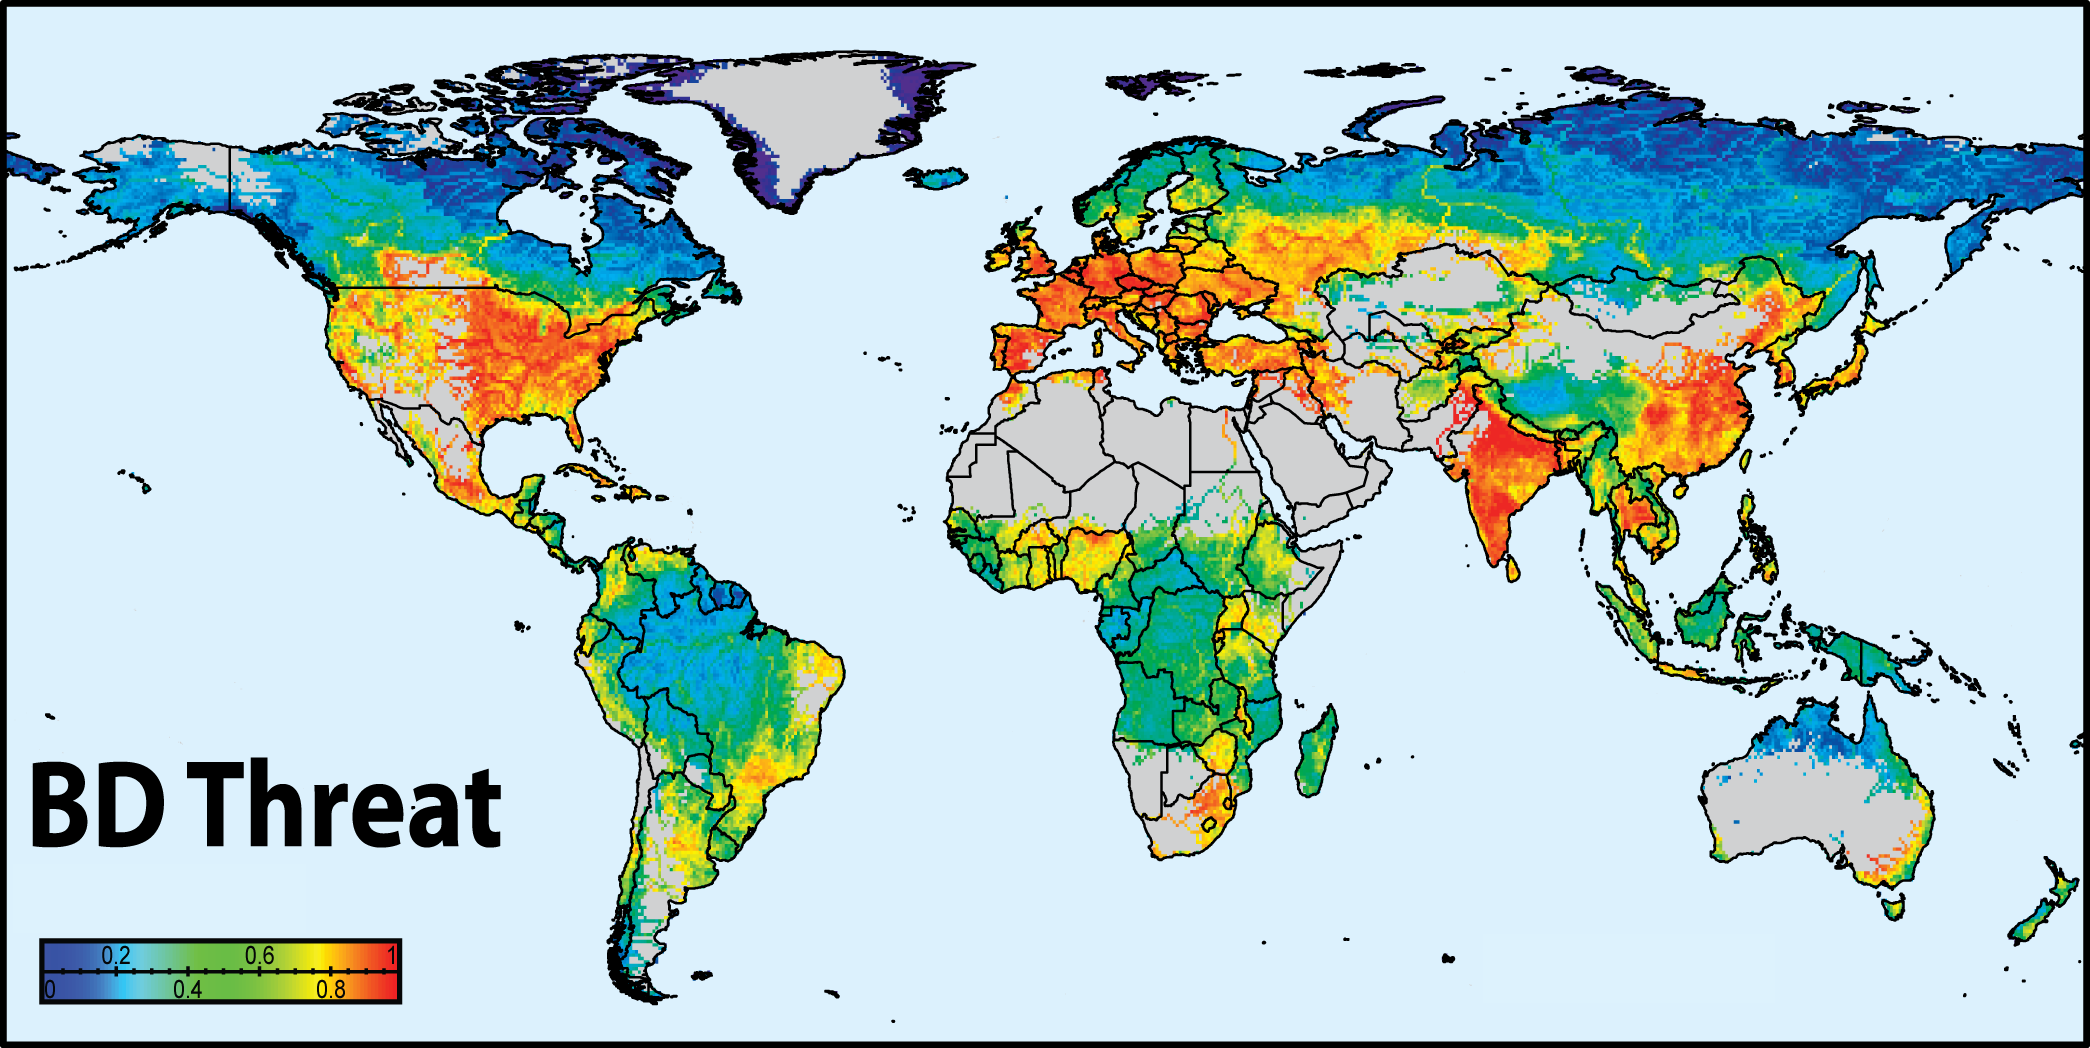 Nature study identifies need for new data to map the effect